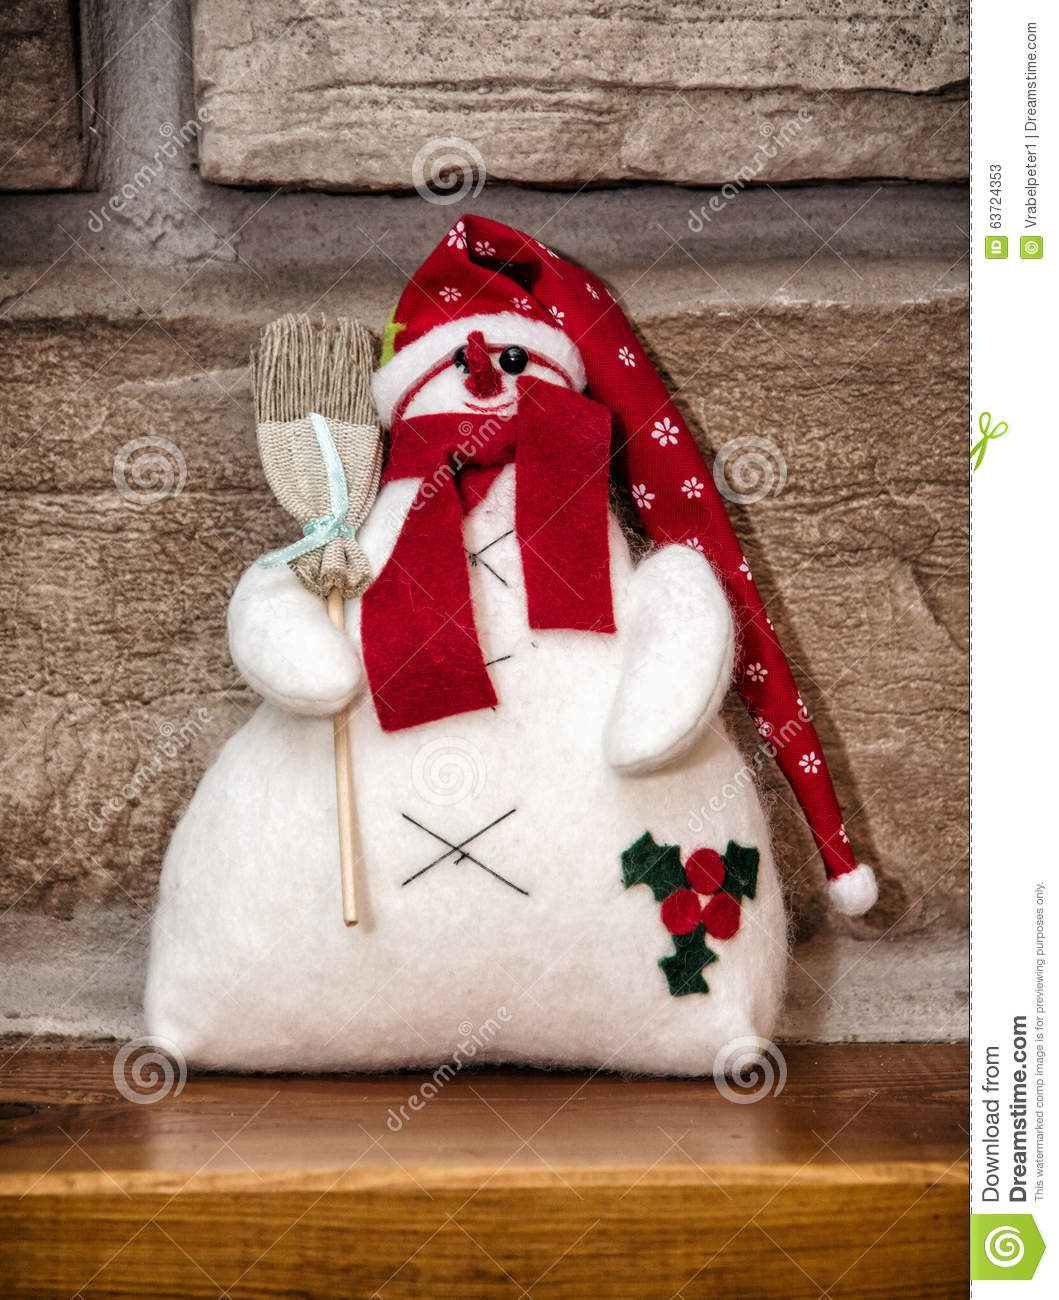 white snowman with red hat and broom christmas decoration - Christmas Broom Decoration